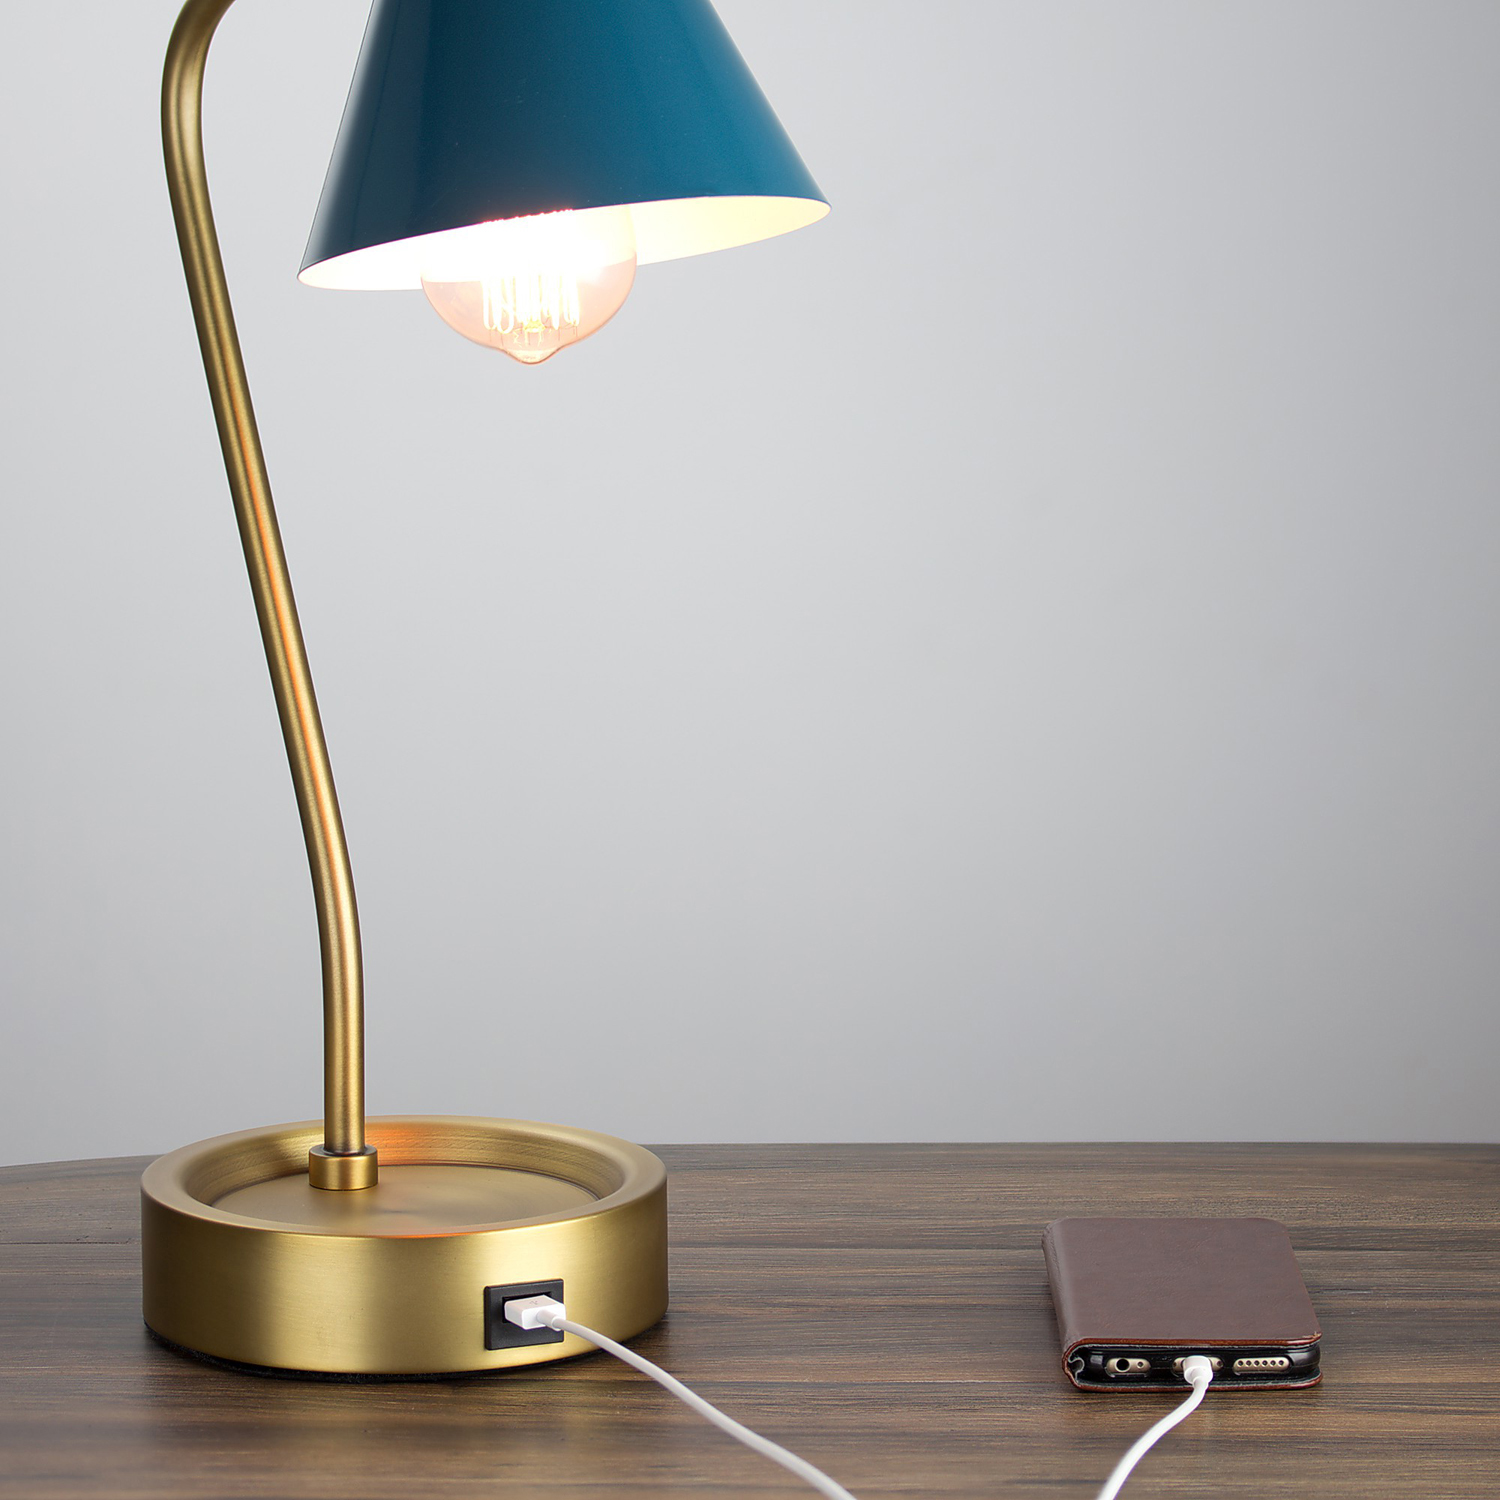 Metal Desk Lamp with USB Charger